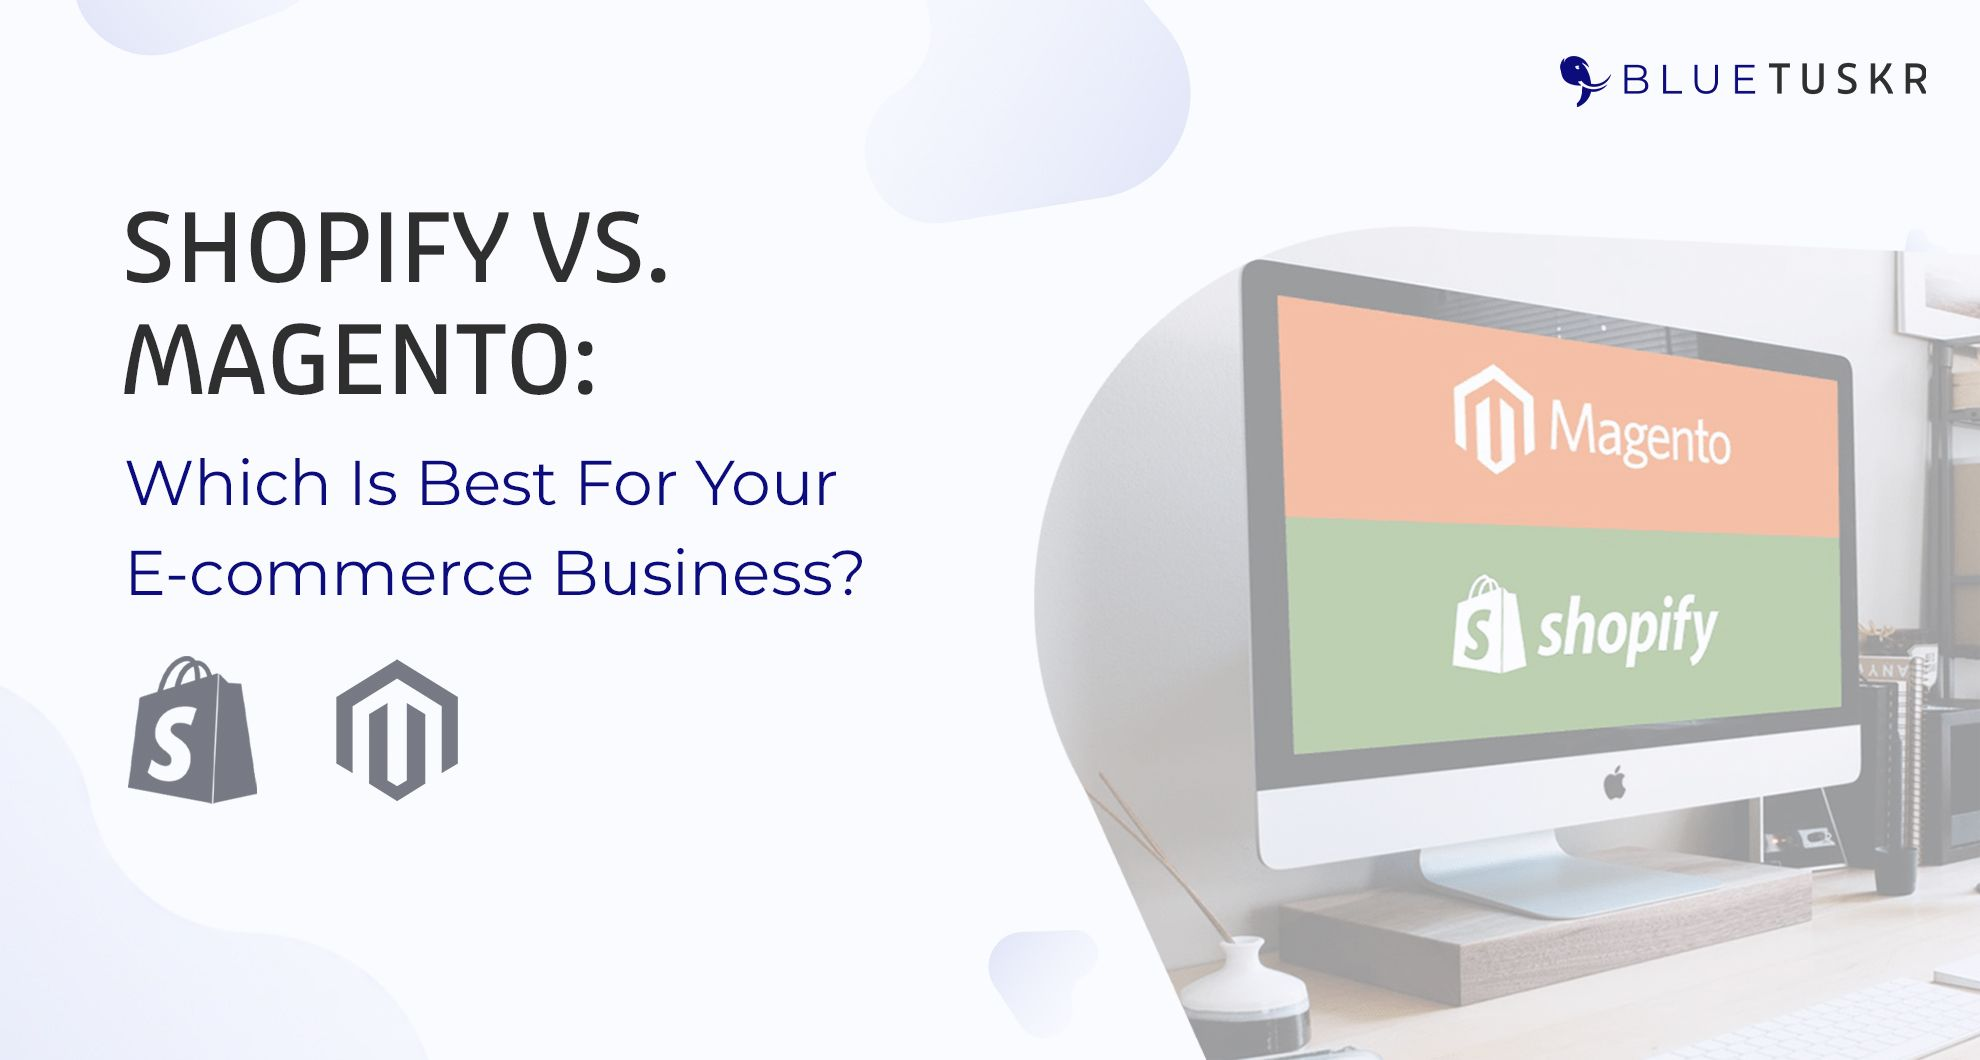 Shopify vs. Magento: Which Is Best For Your E-commerce Business?